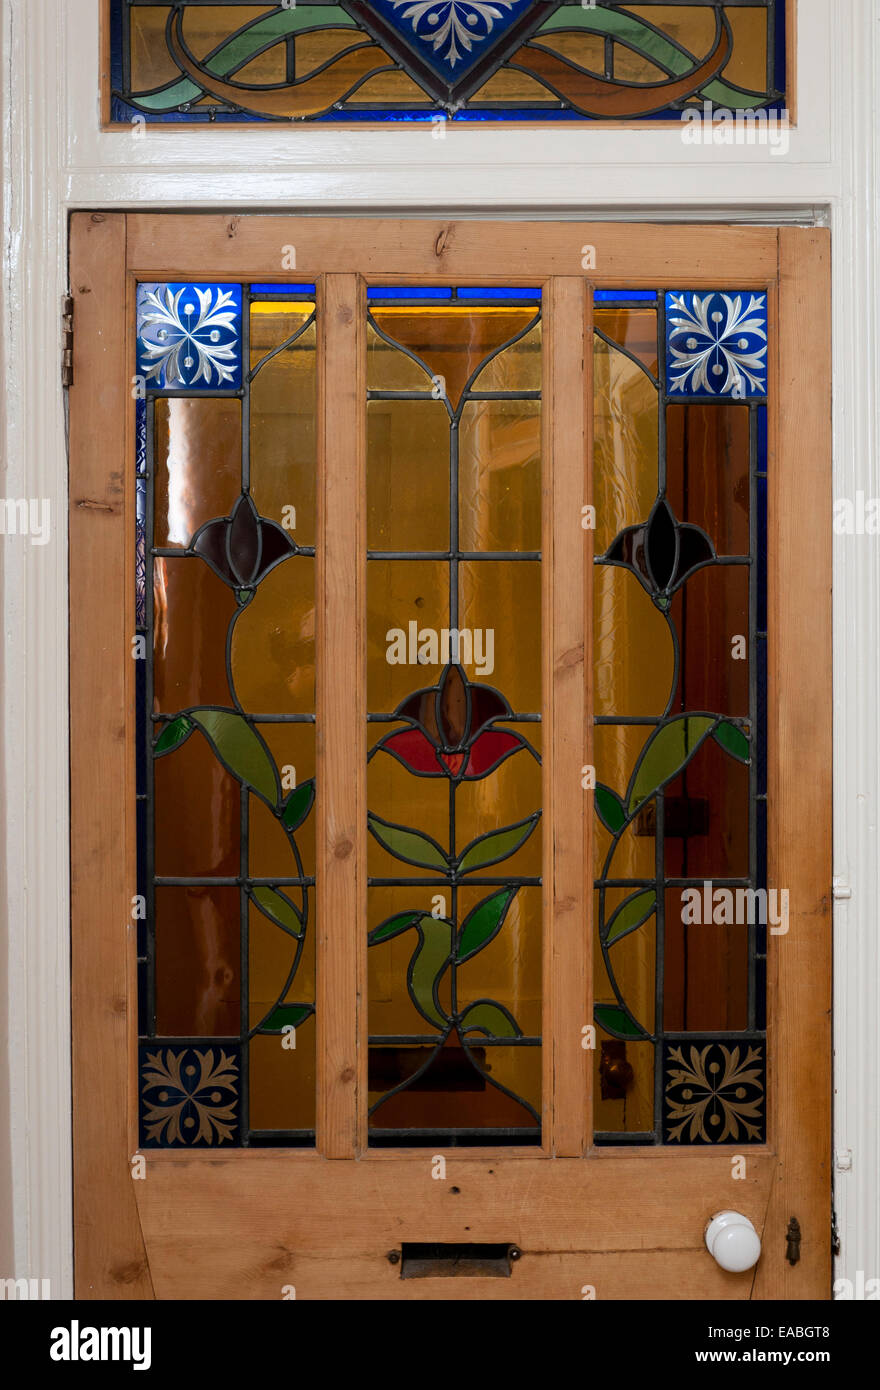 Stripped wooden door with stained glass panels in a Victorian terrace house. - Stock Image